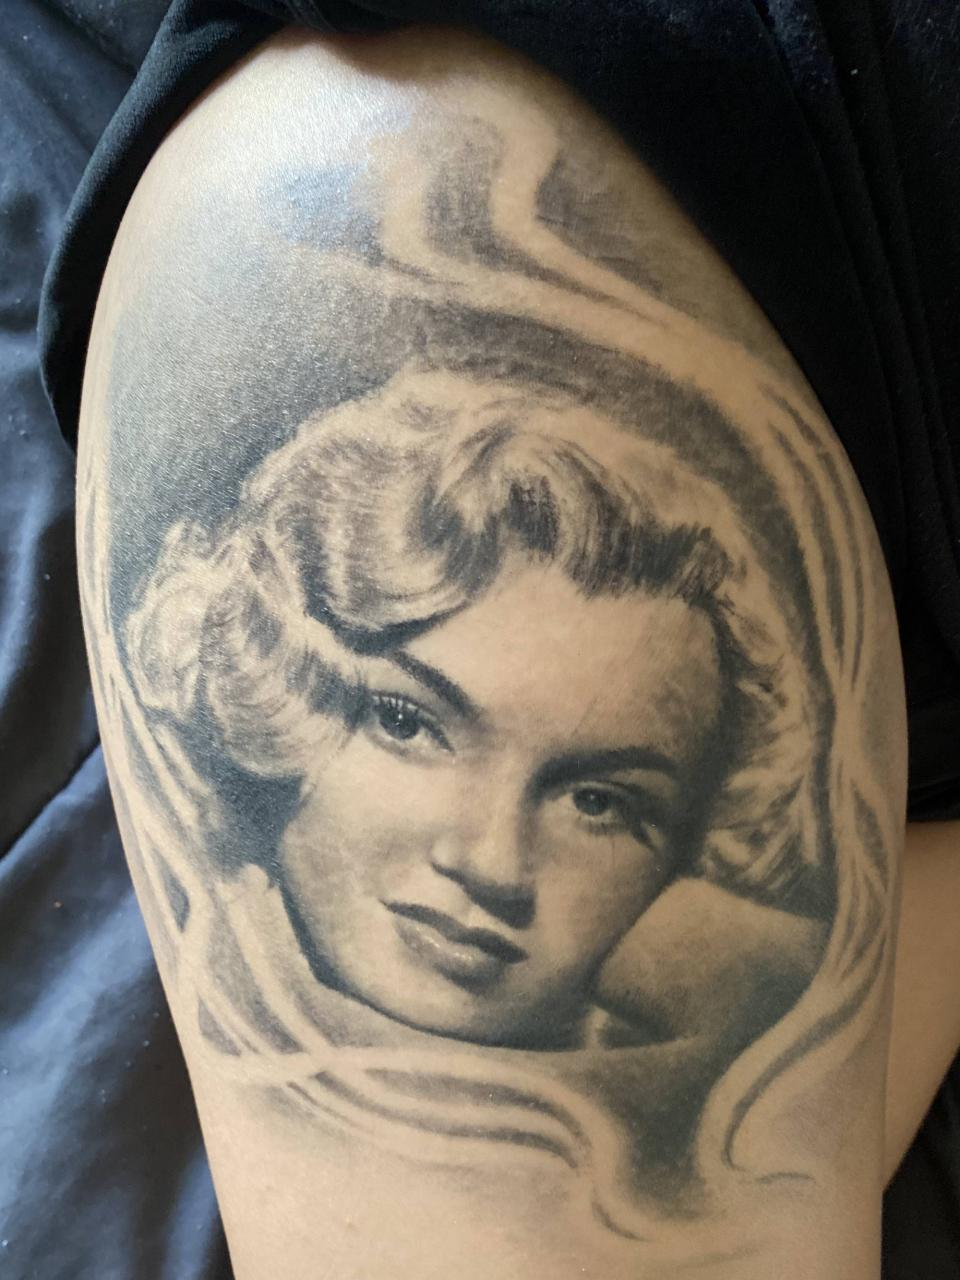 My Norma Jean portrait done by Gus B in Texas.